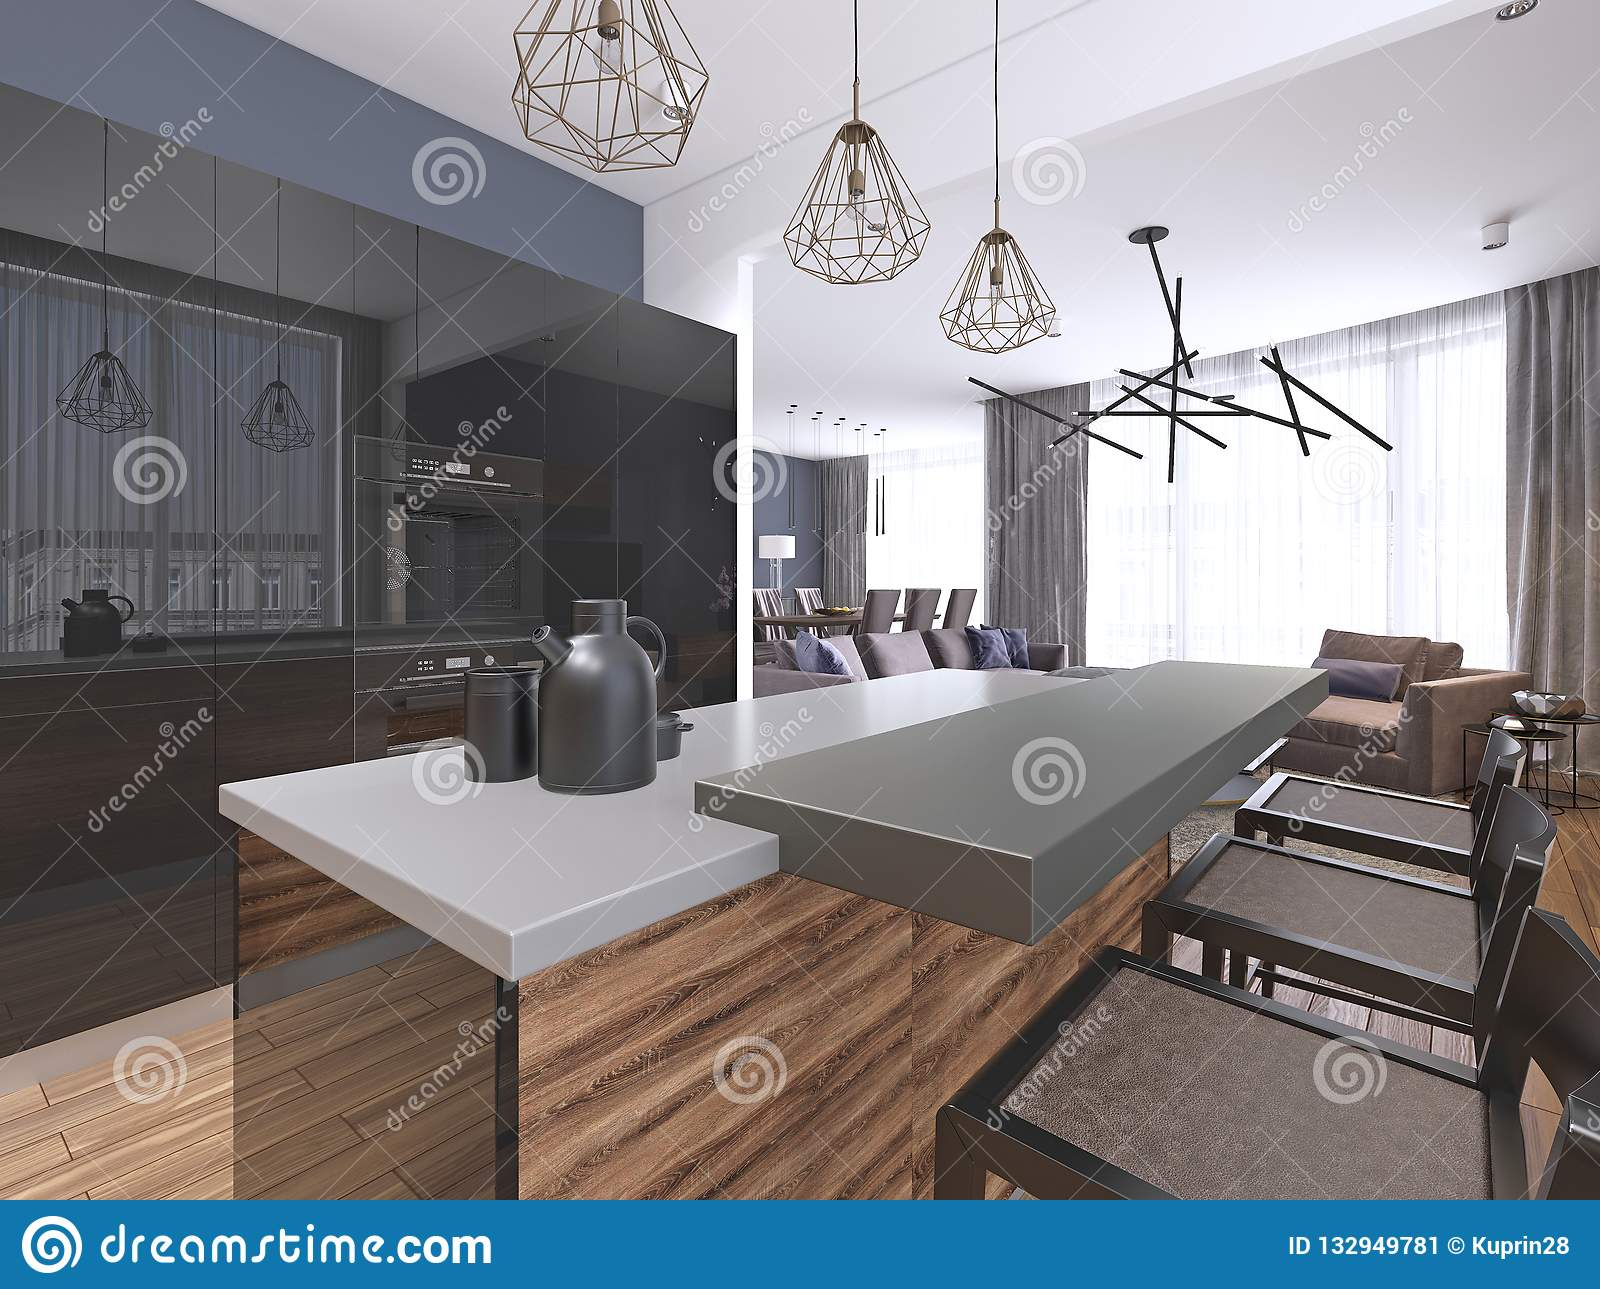 Large Luxury Contemporary Kitchen With Stone Island Bench